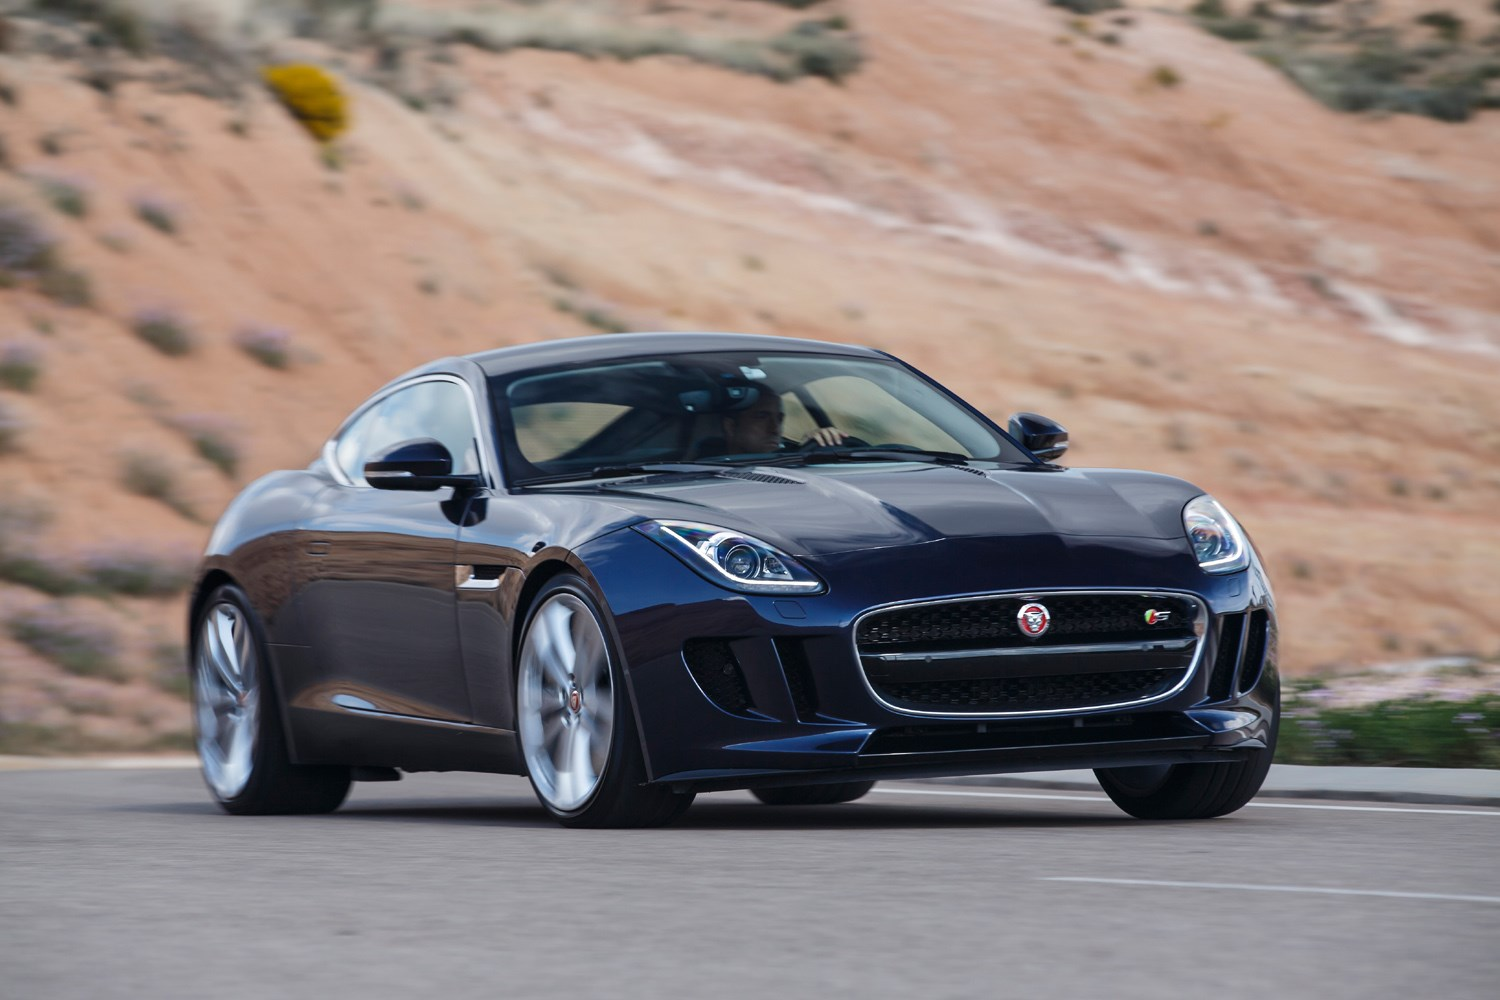 2014 jaguar f type reviews specs and autos post. Black Bedroom Furniture Sets. Home Design Ideas